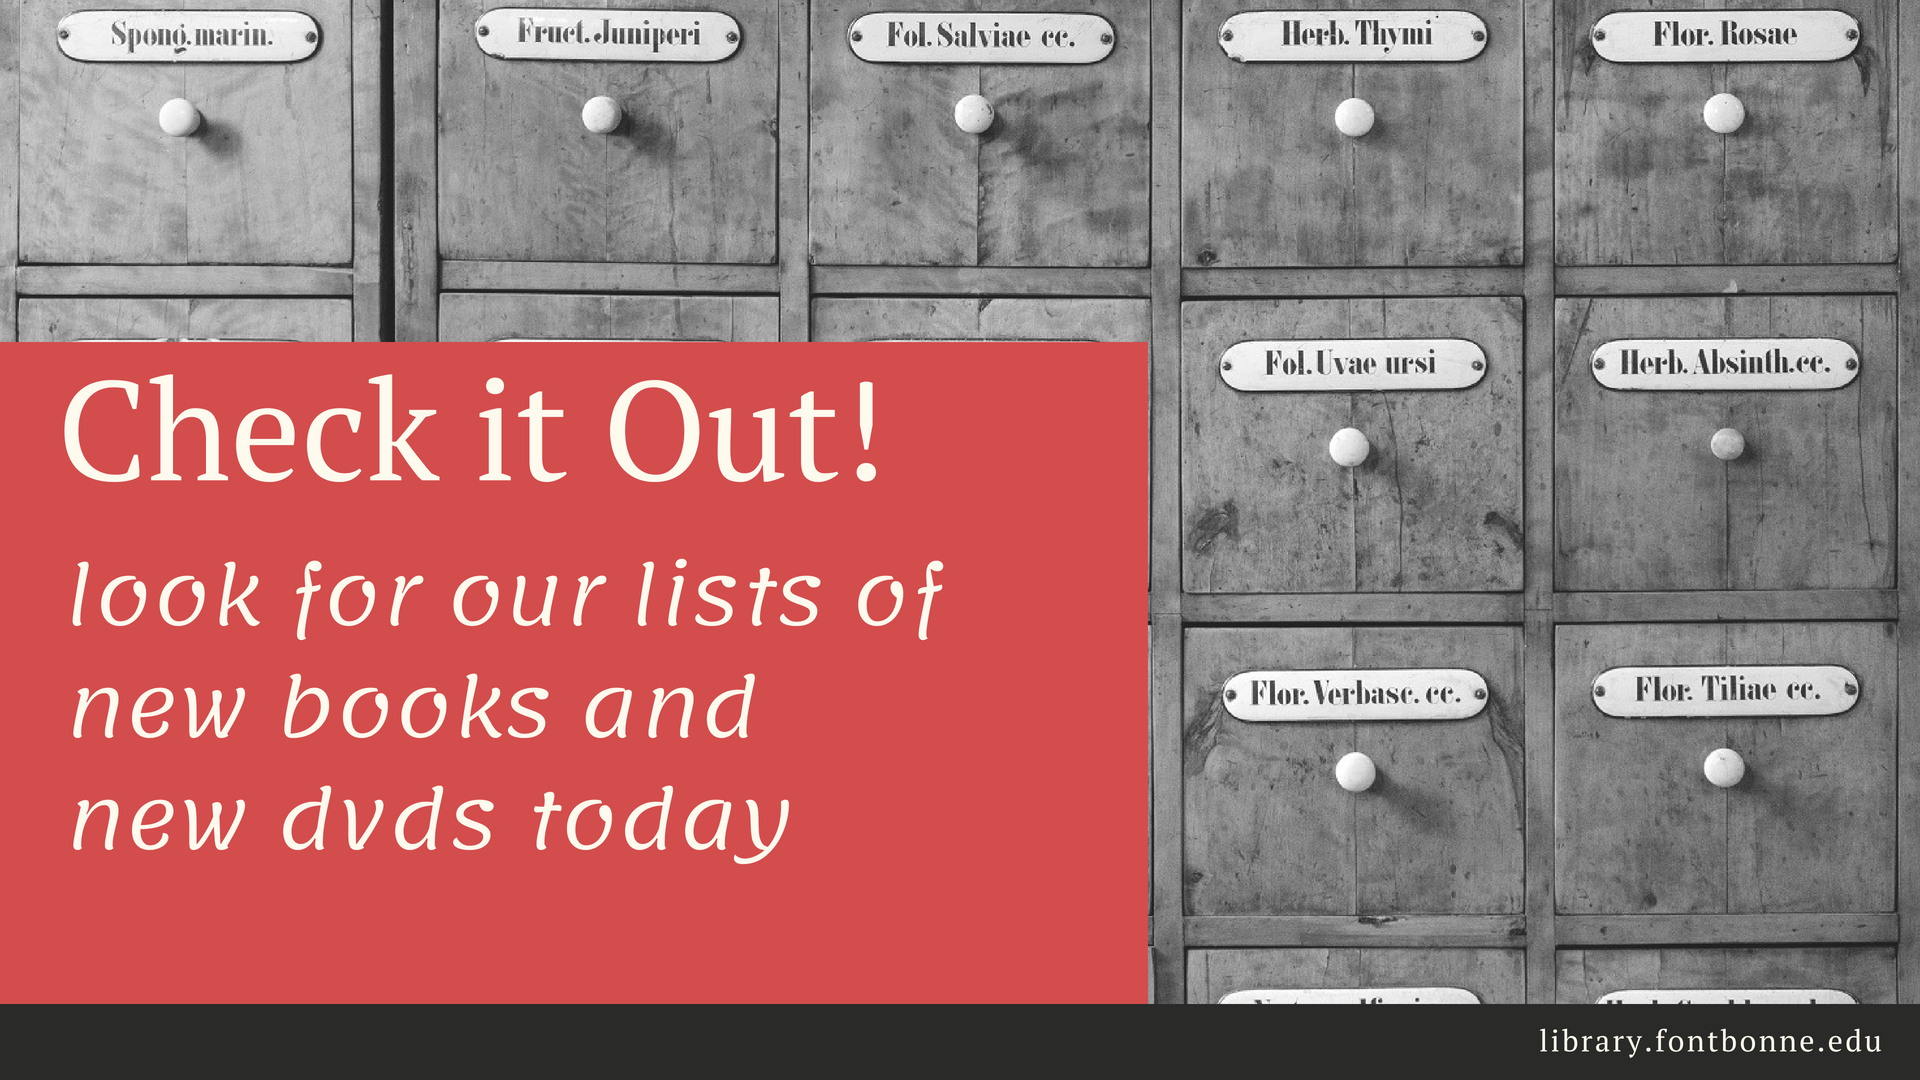 Look for lists of new books & dvds